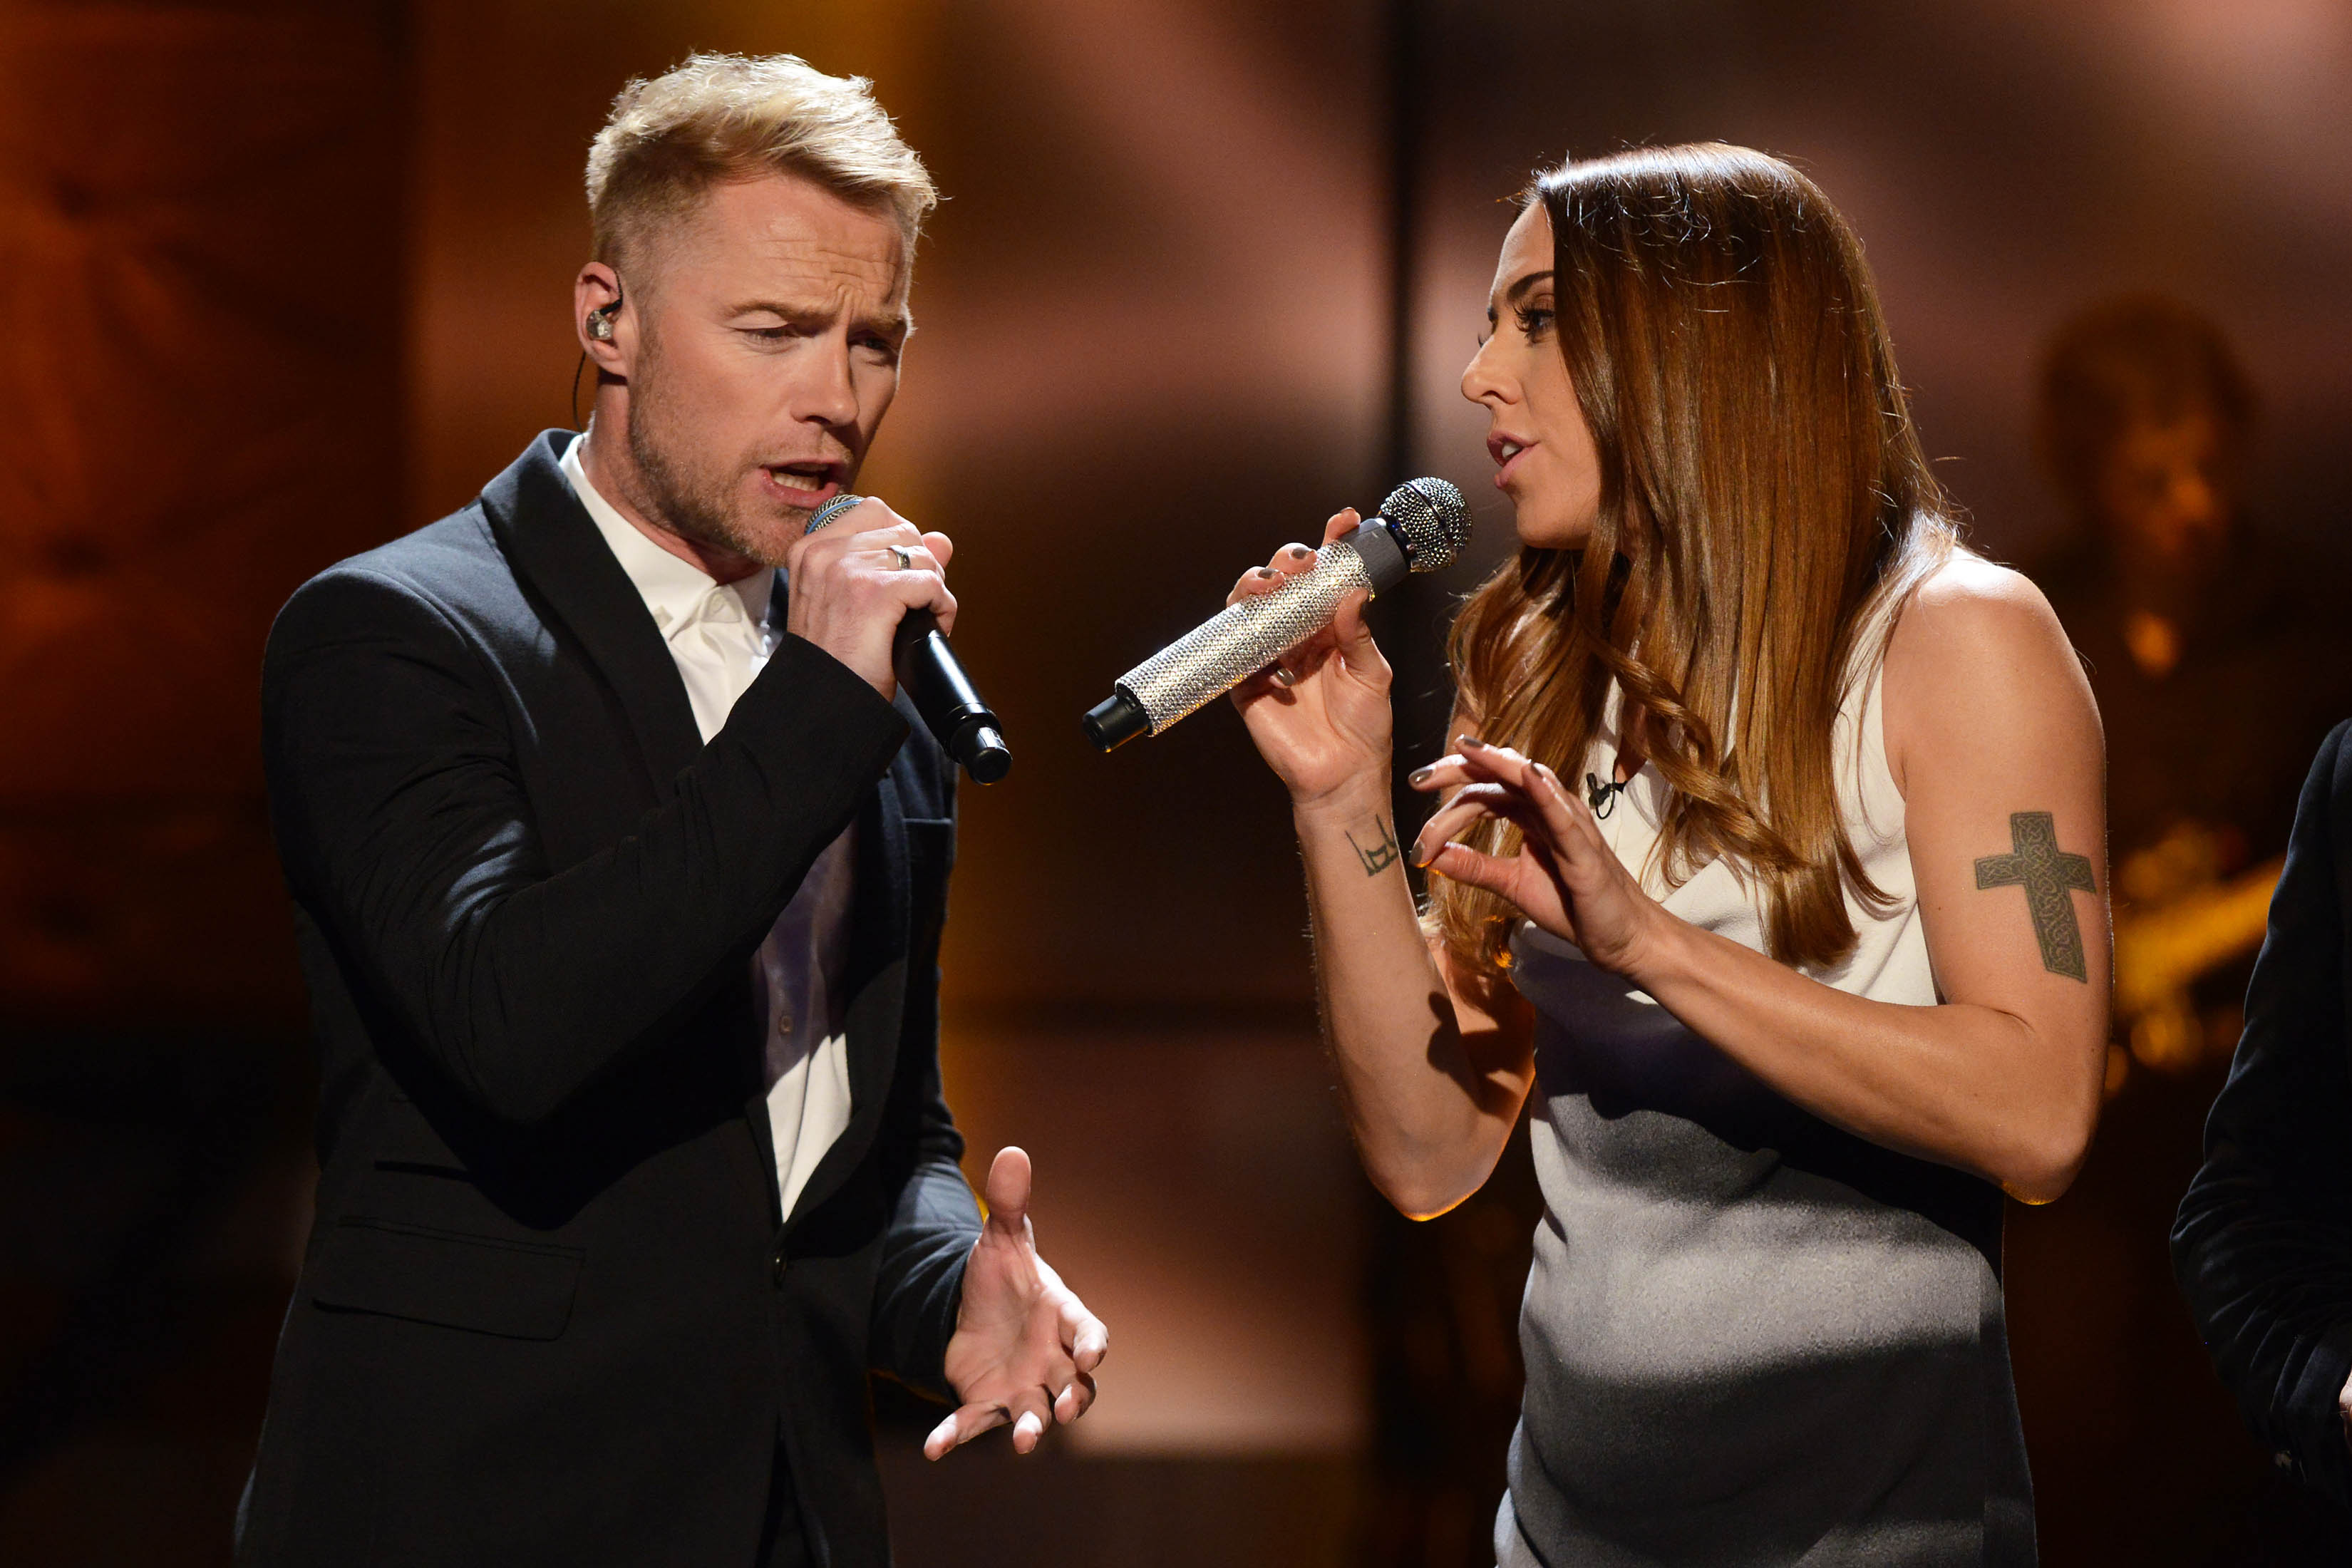 Ronan Keating and Melanie C